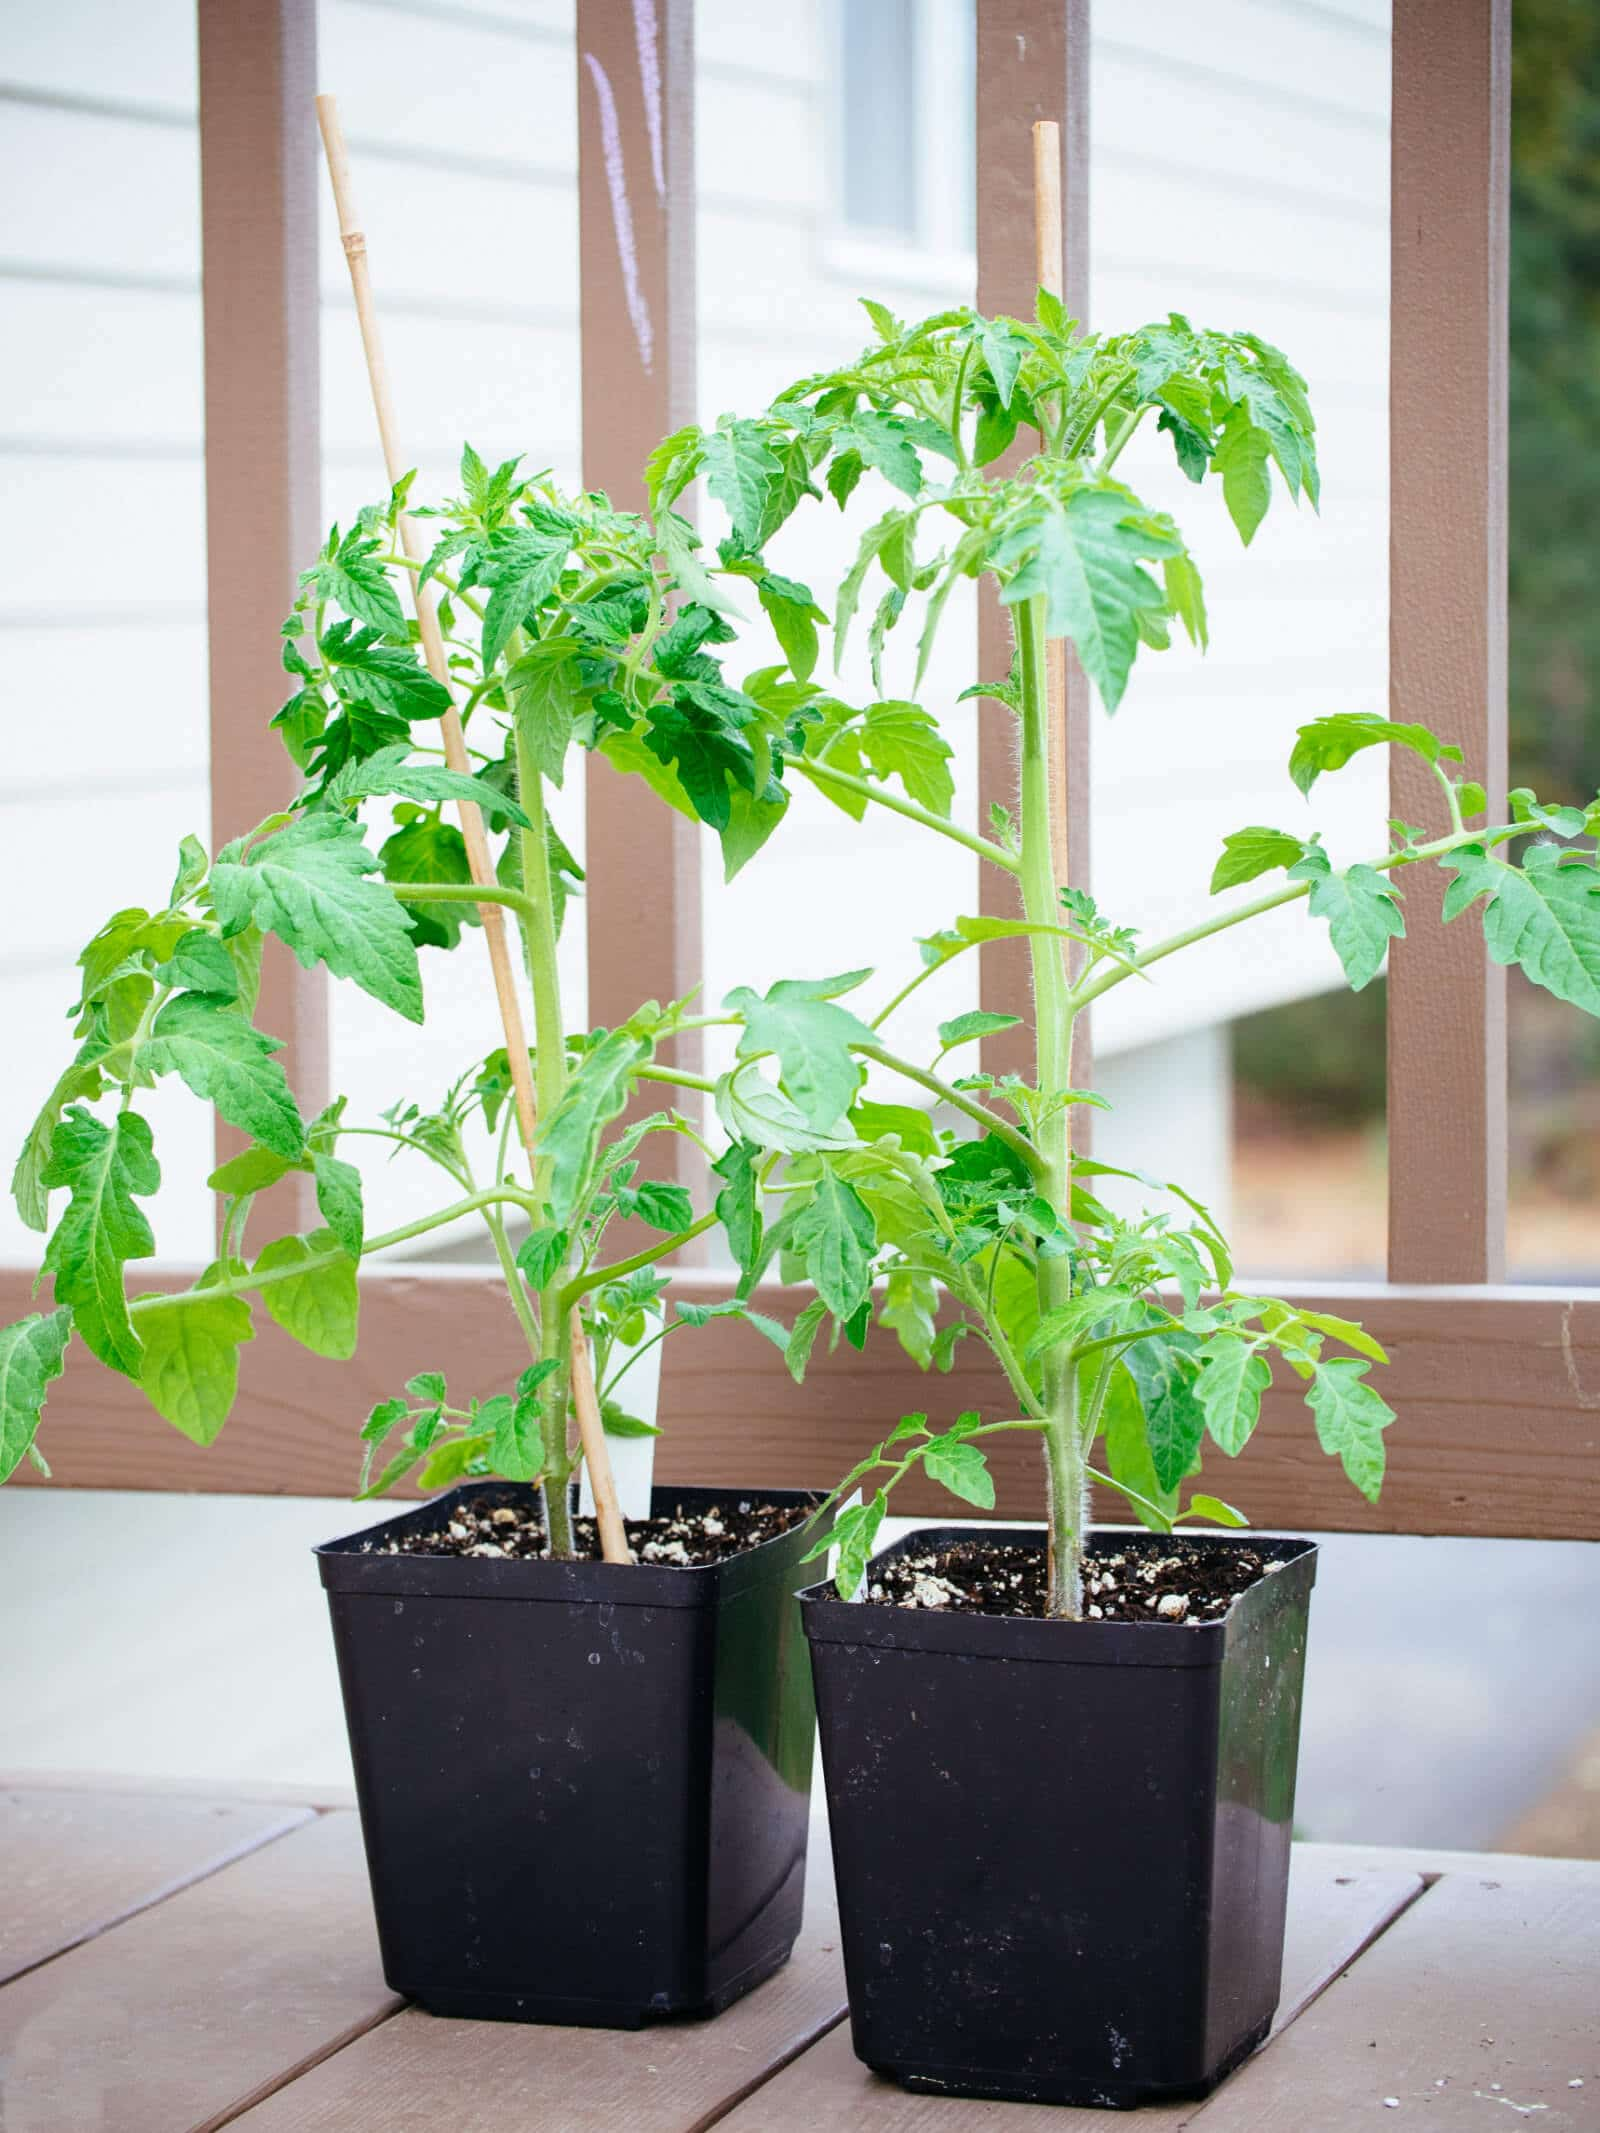 Tomato growing tips for the home gardener